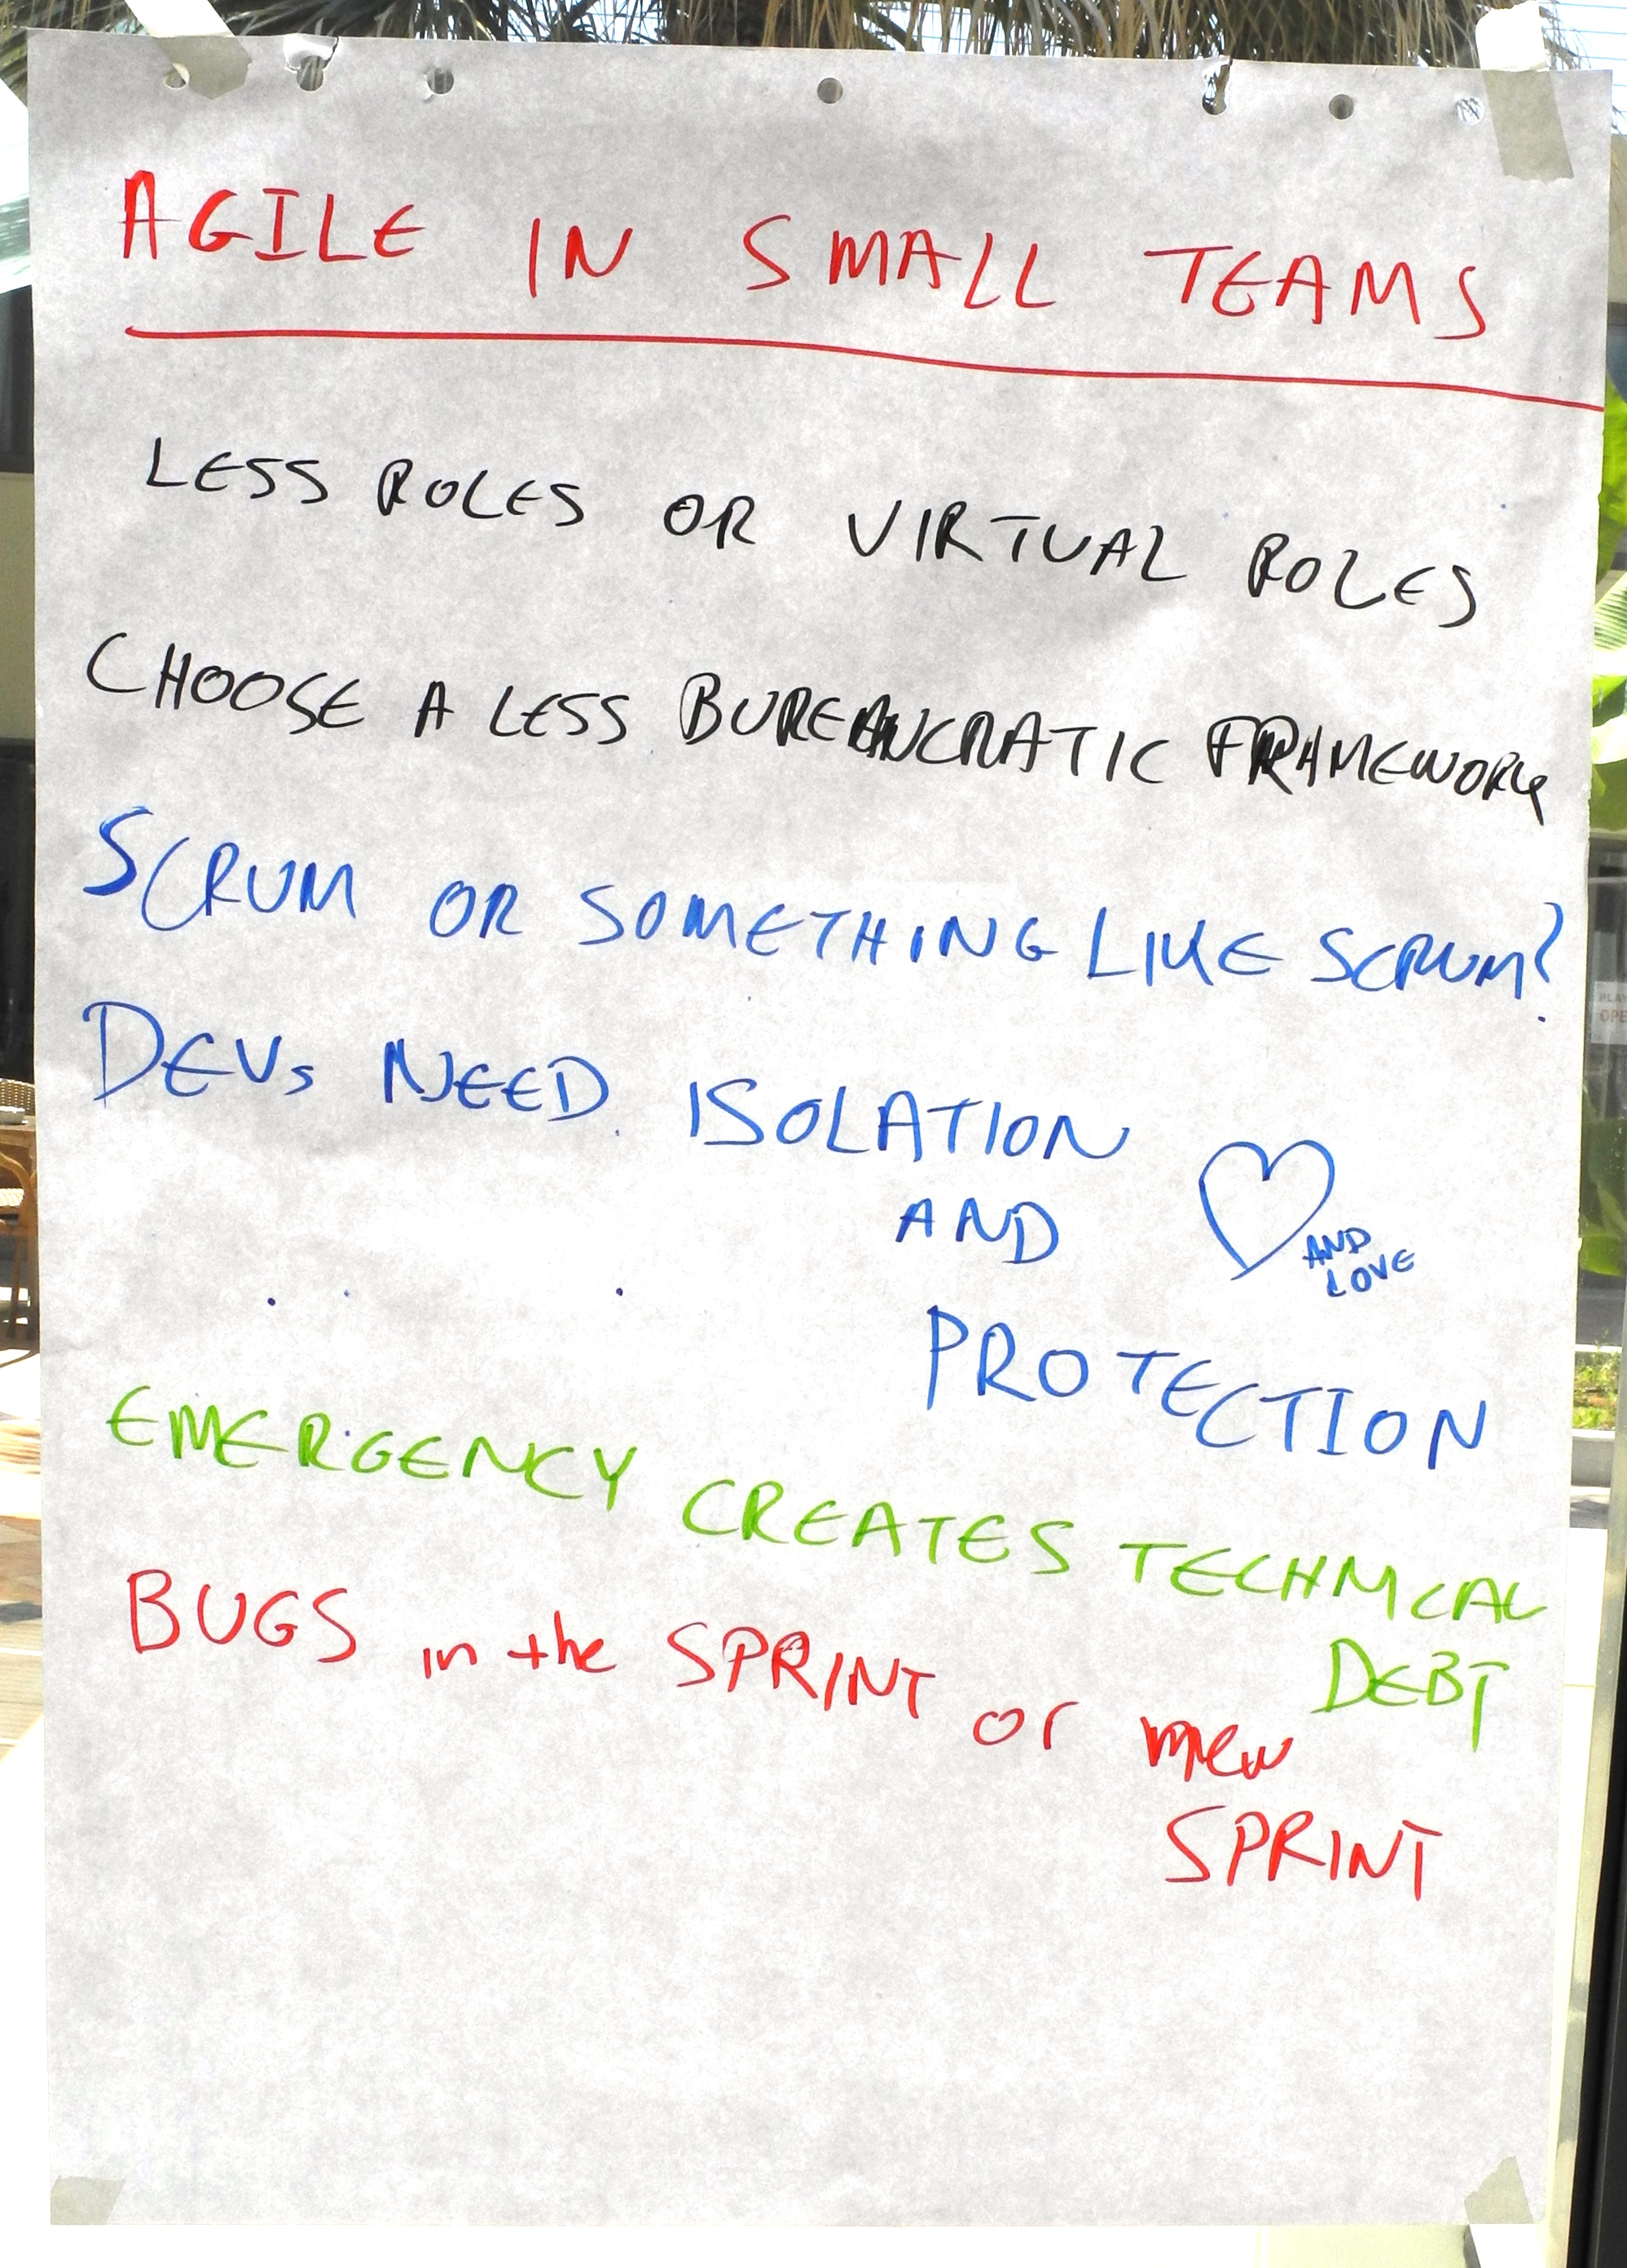 Harvest - Agile in very small teams